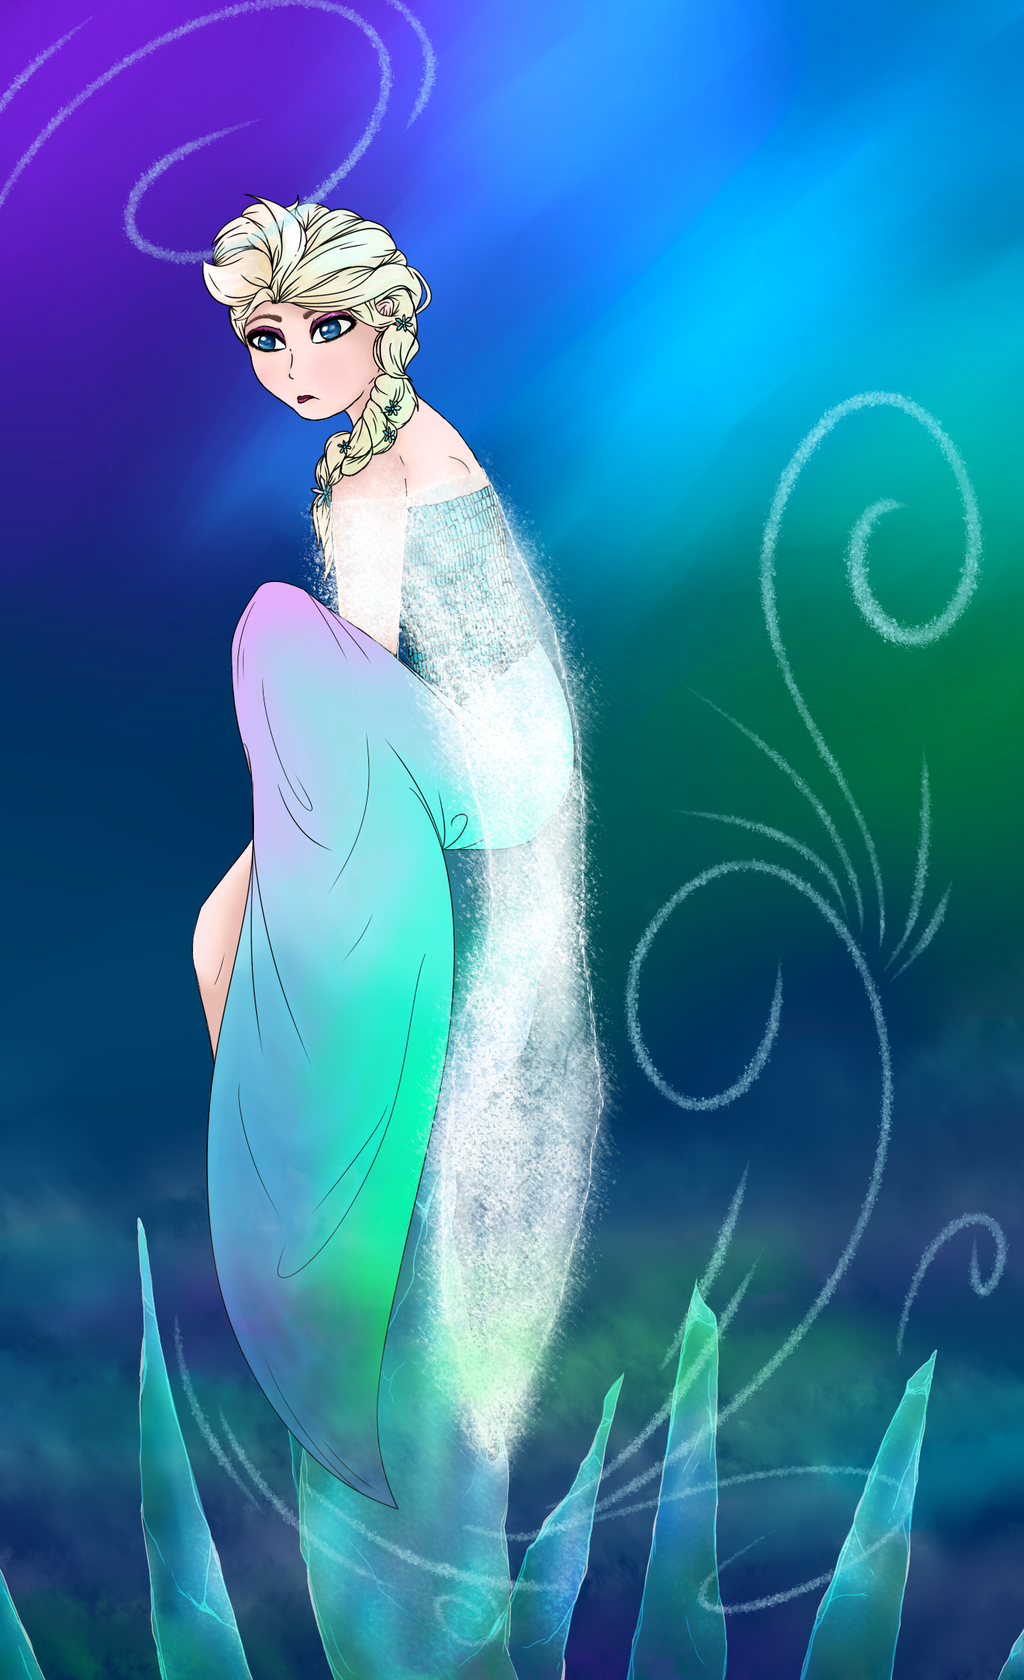 Most recent image: Elsa From Frozen ~FanArt